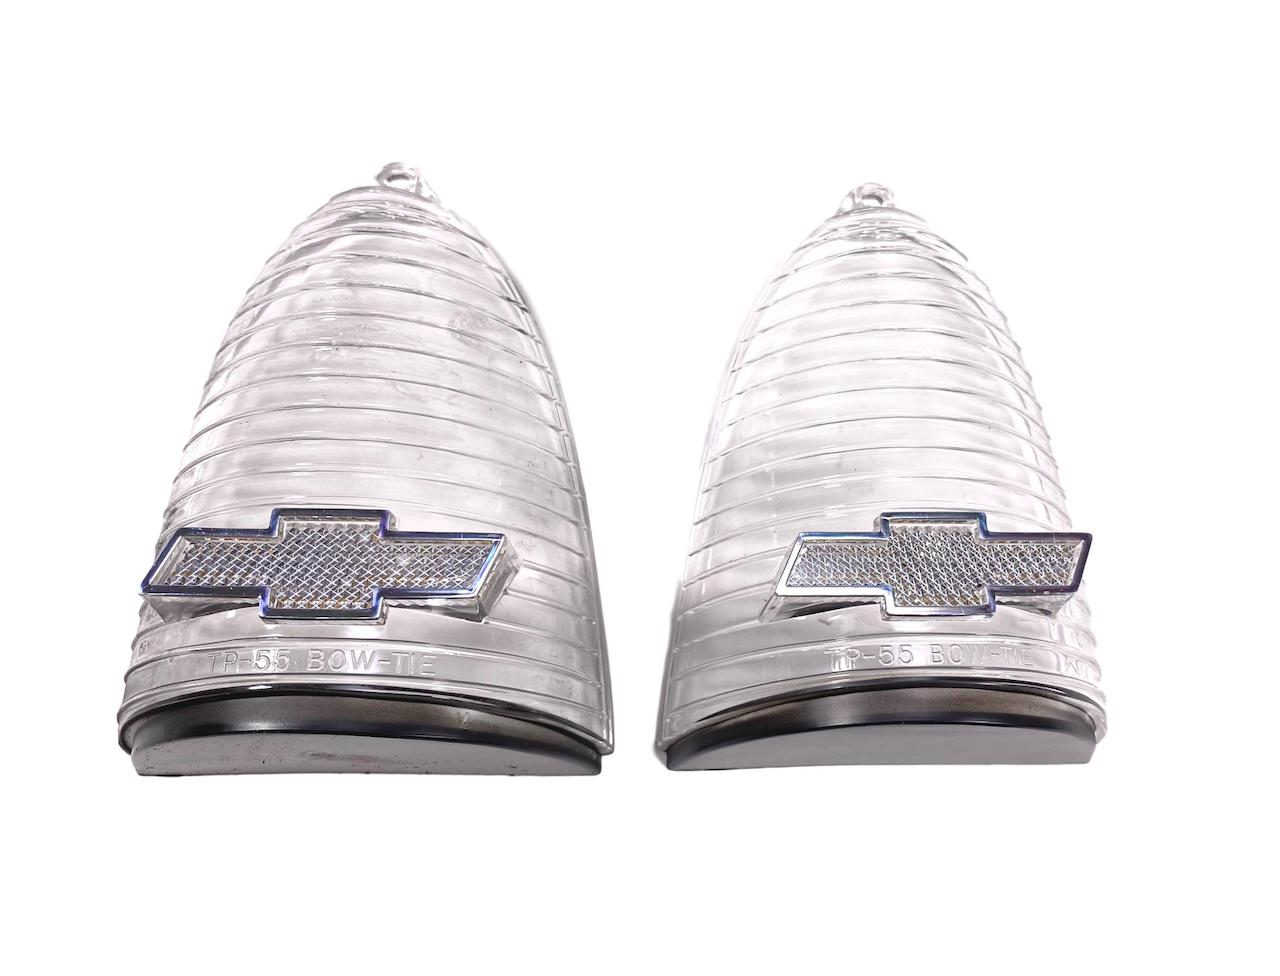 1955 Chevy Clear Taillight Lenses With Chrome Bowtie